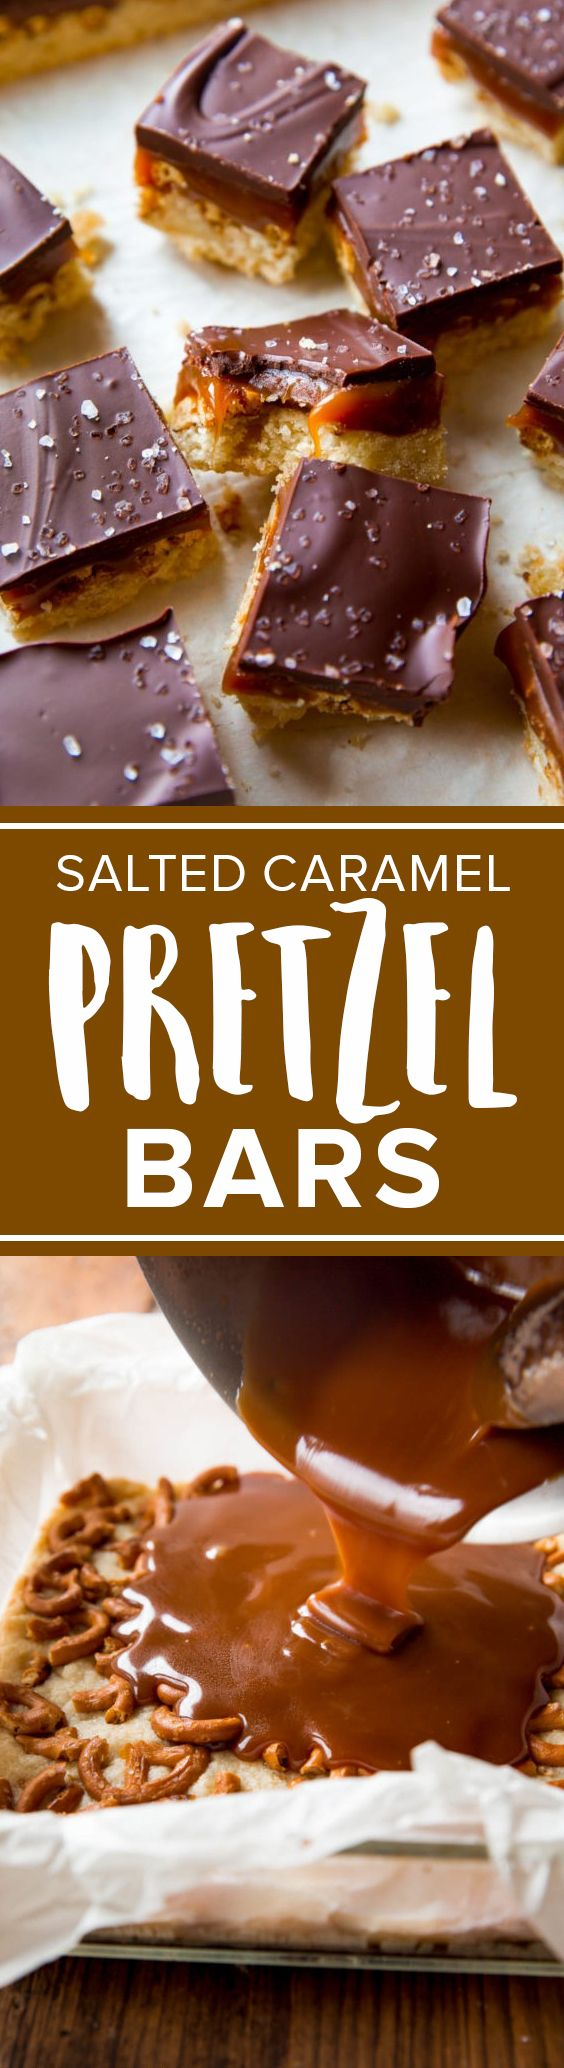 Sweet and salty salted caramel pretzel bars with shortbread crust and dark chocolate sea salt! Easy recipe http://sallysbakingaddiction.com/2016/10/07/salted-caramel-pretzel-crunch-bars/